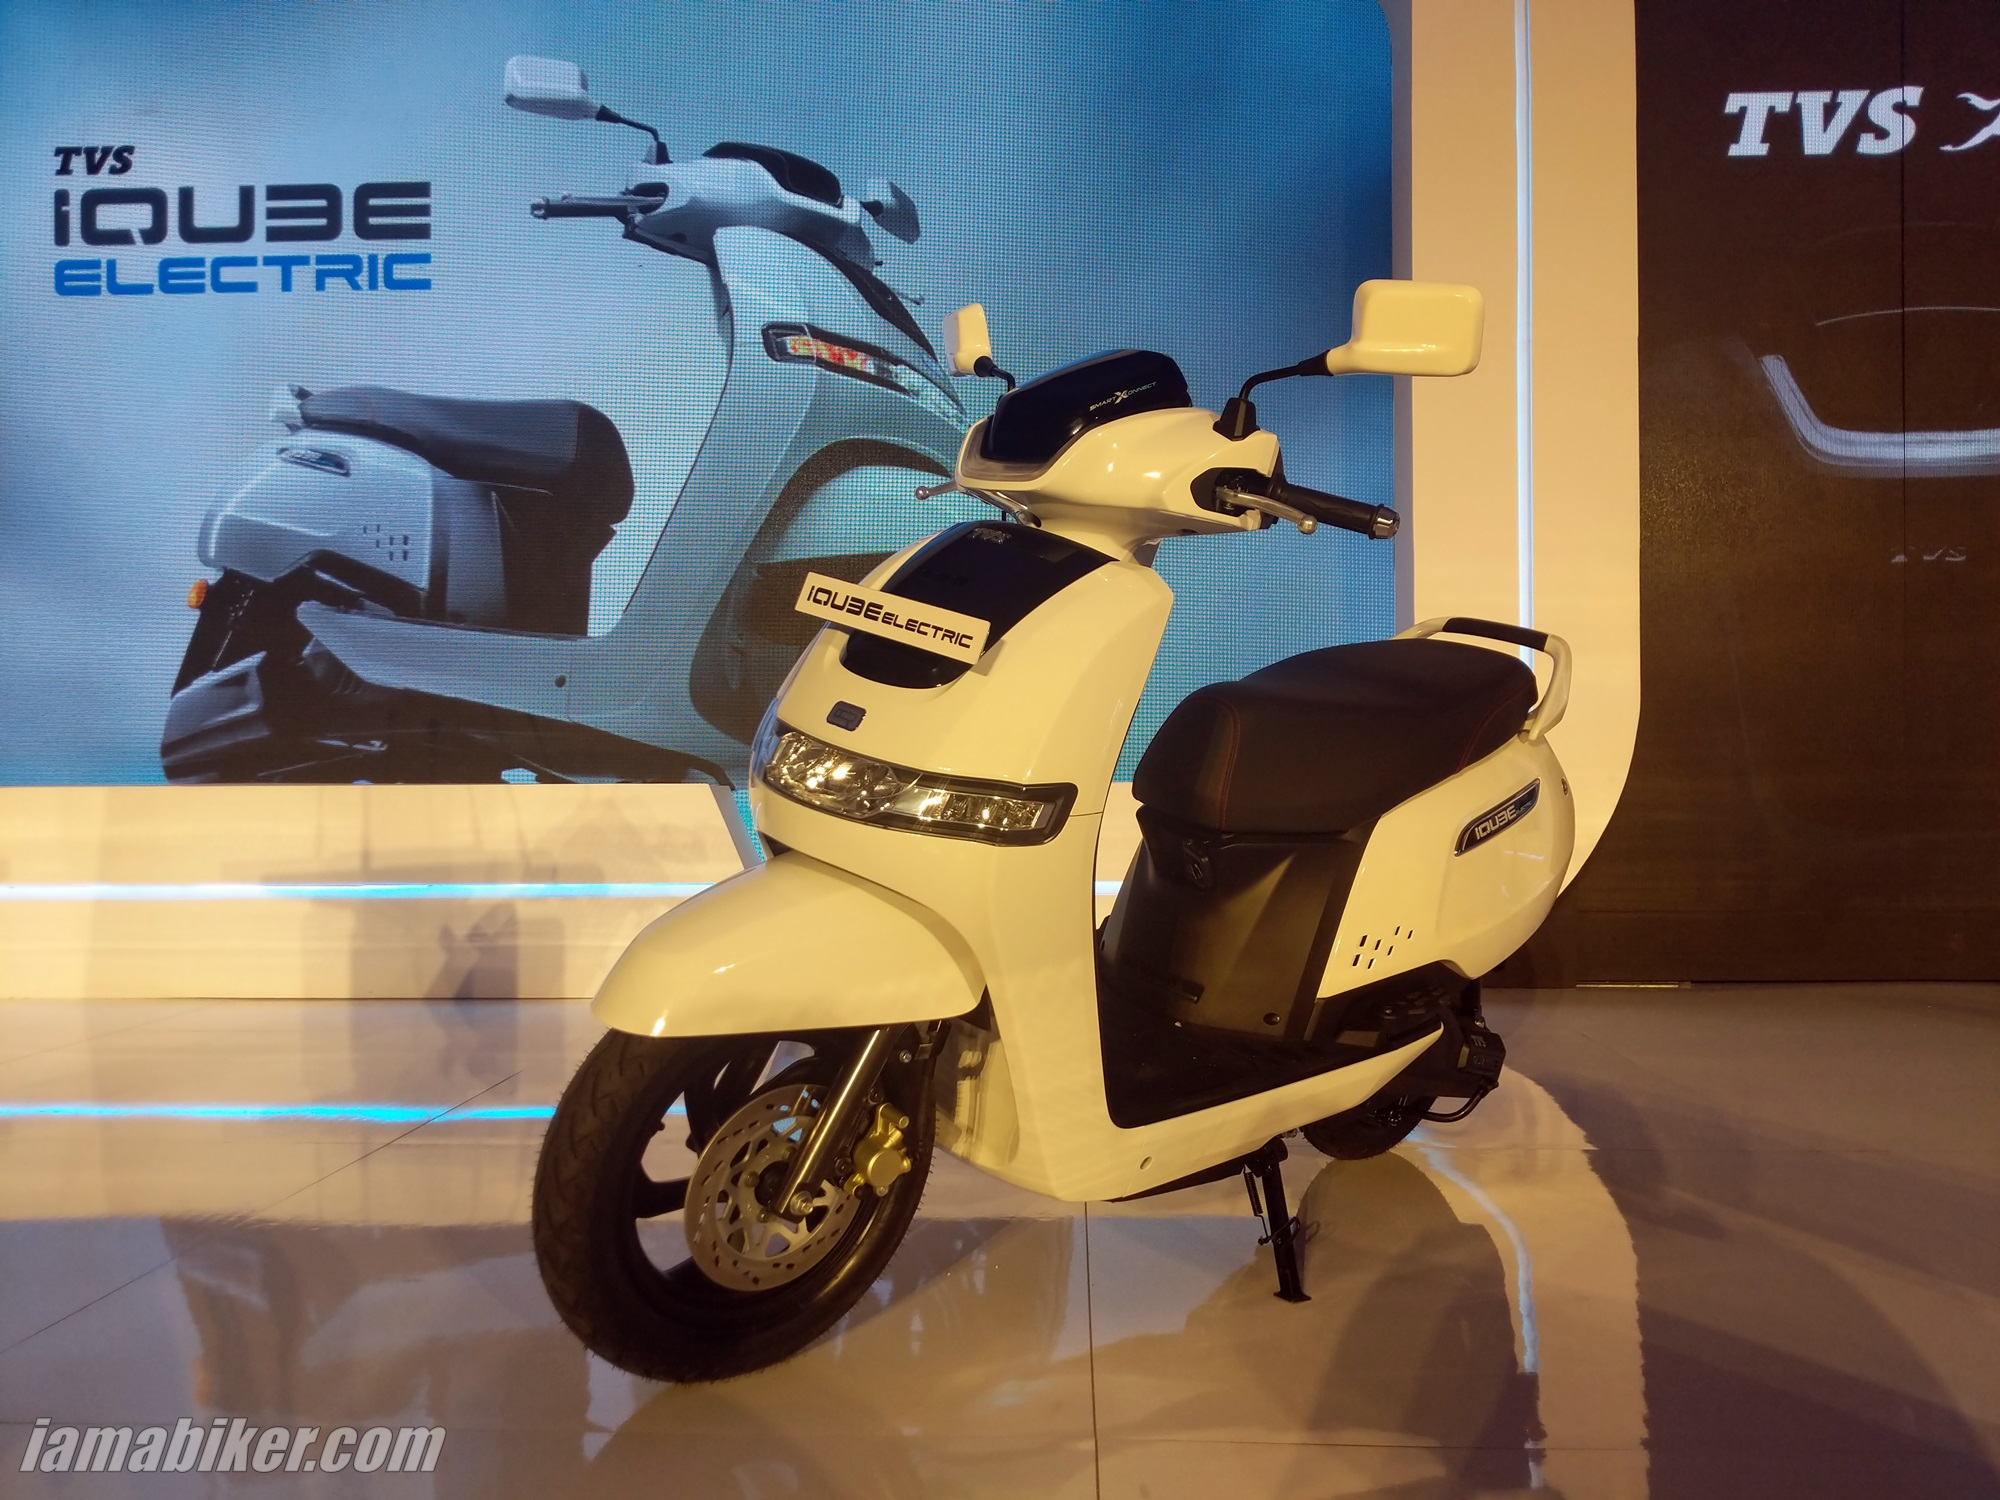 TVS iQUBE electric scooter front suspension and front disc brake